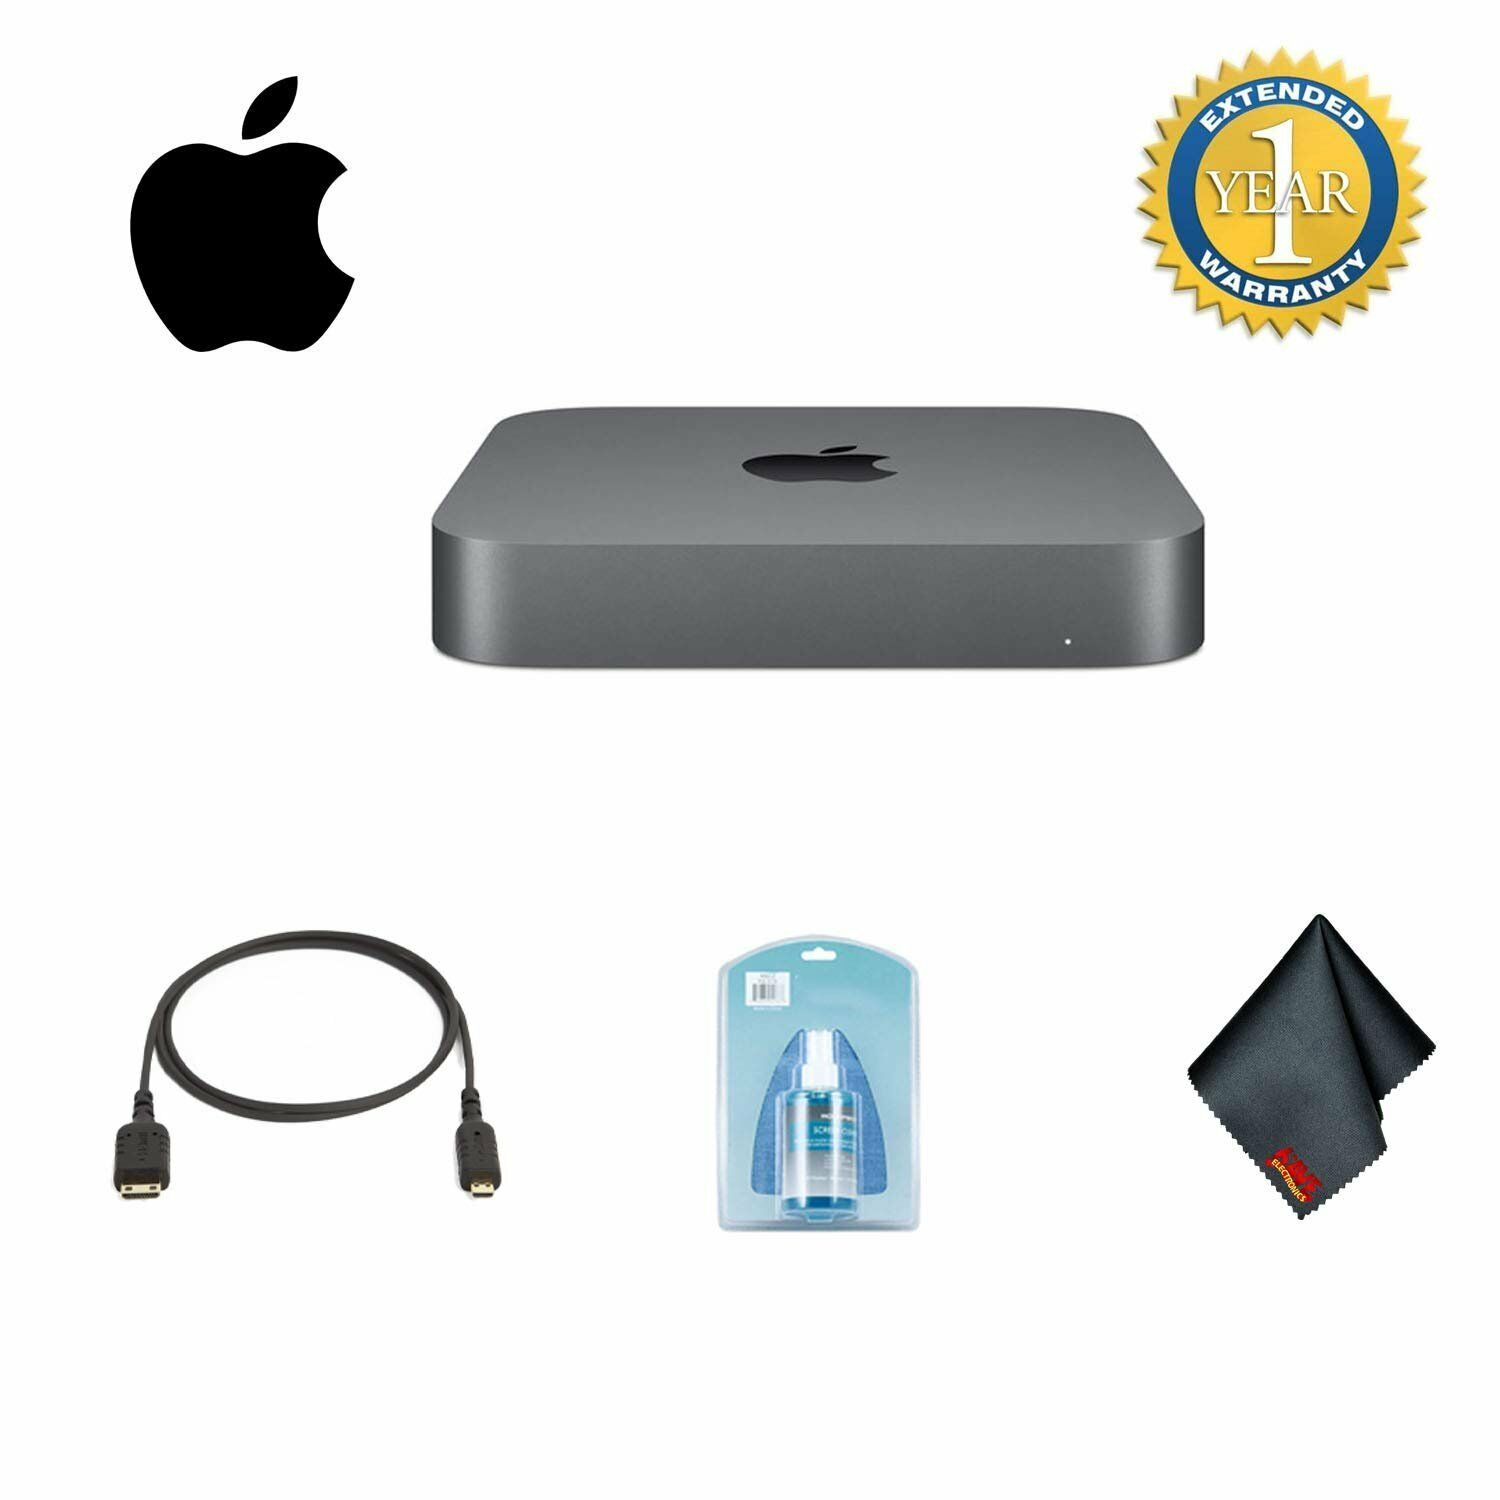 Apple Mac Mini Late 2018 Model MRTT2LL/A 256GB SSD Bundle 1